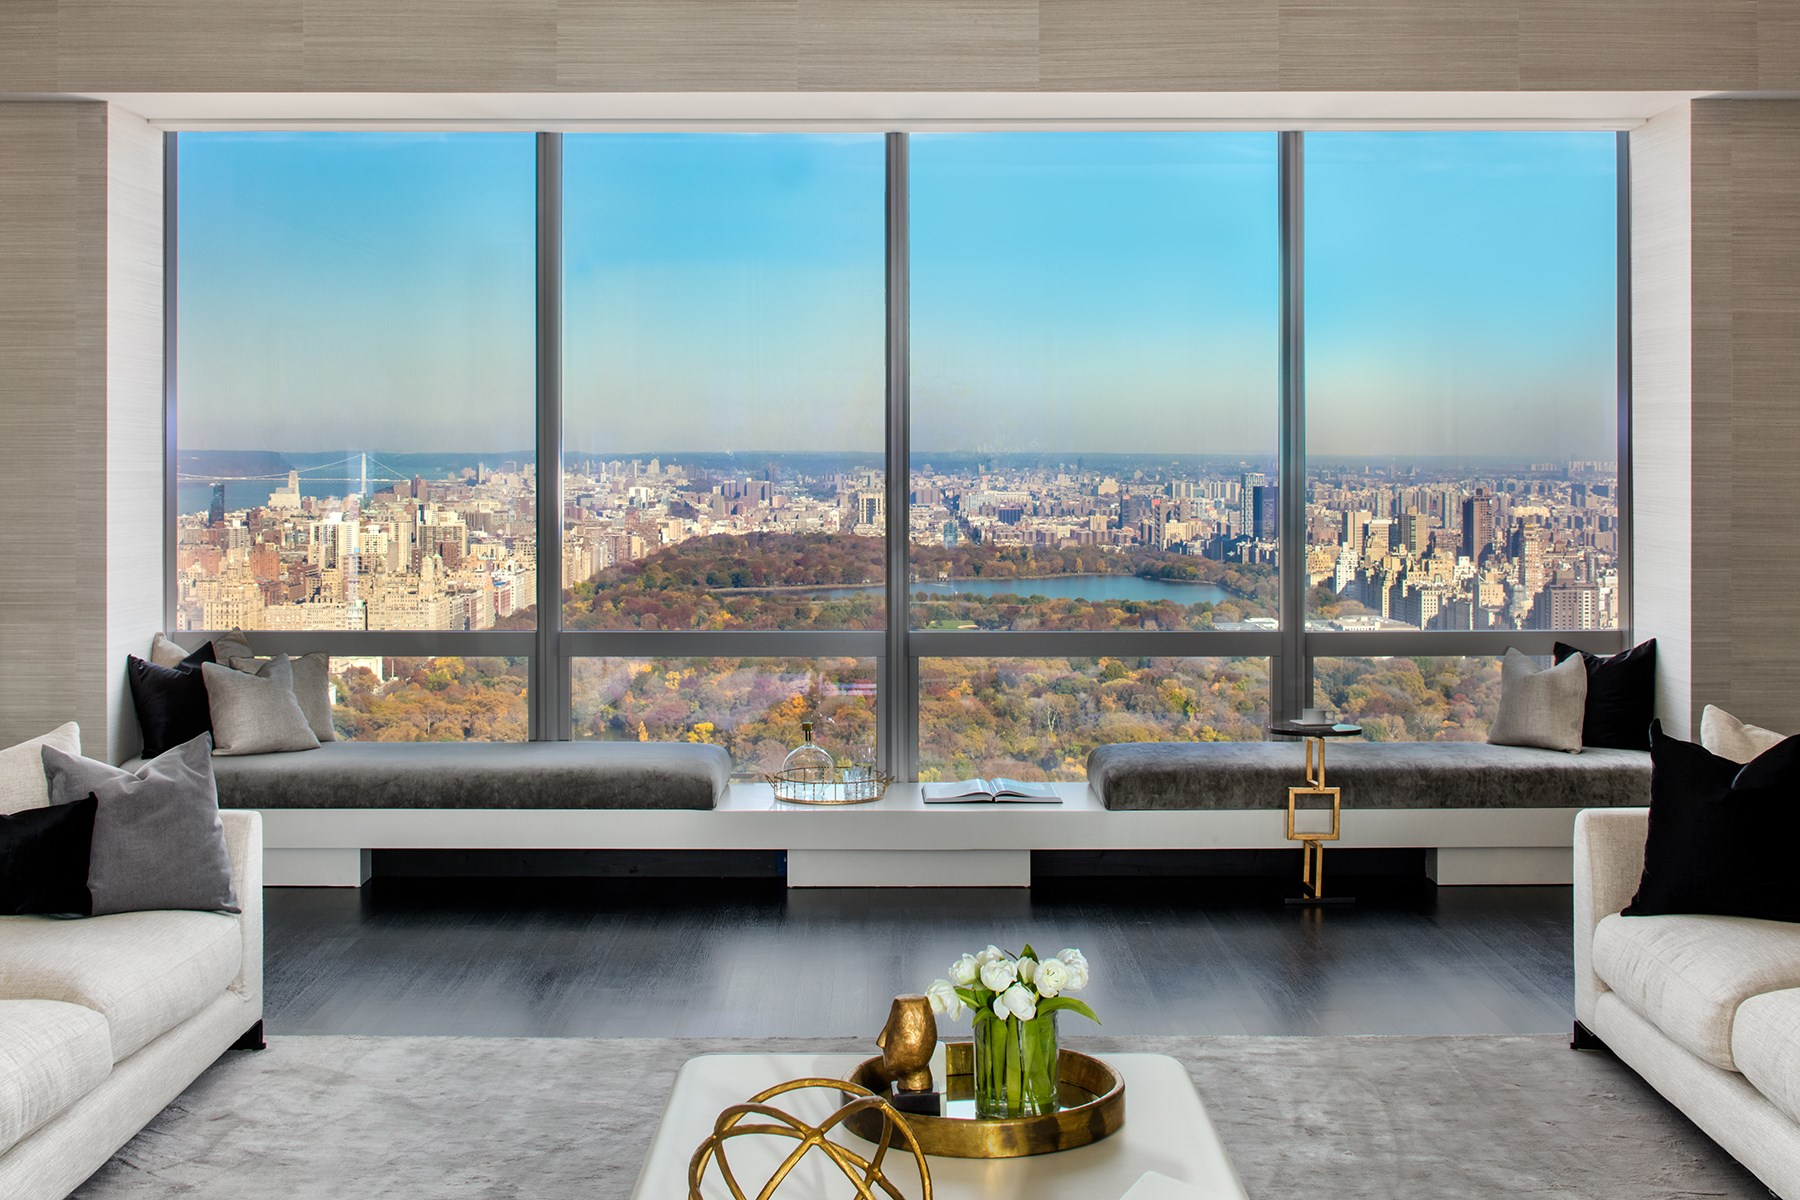 Condominium for Sale at 157 West 57th Street 157 West 57th Street Apt 61B New York, New York, 10022 United States